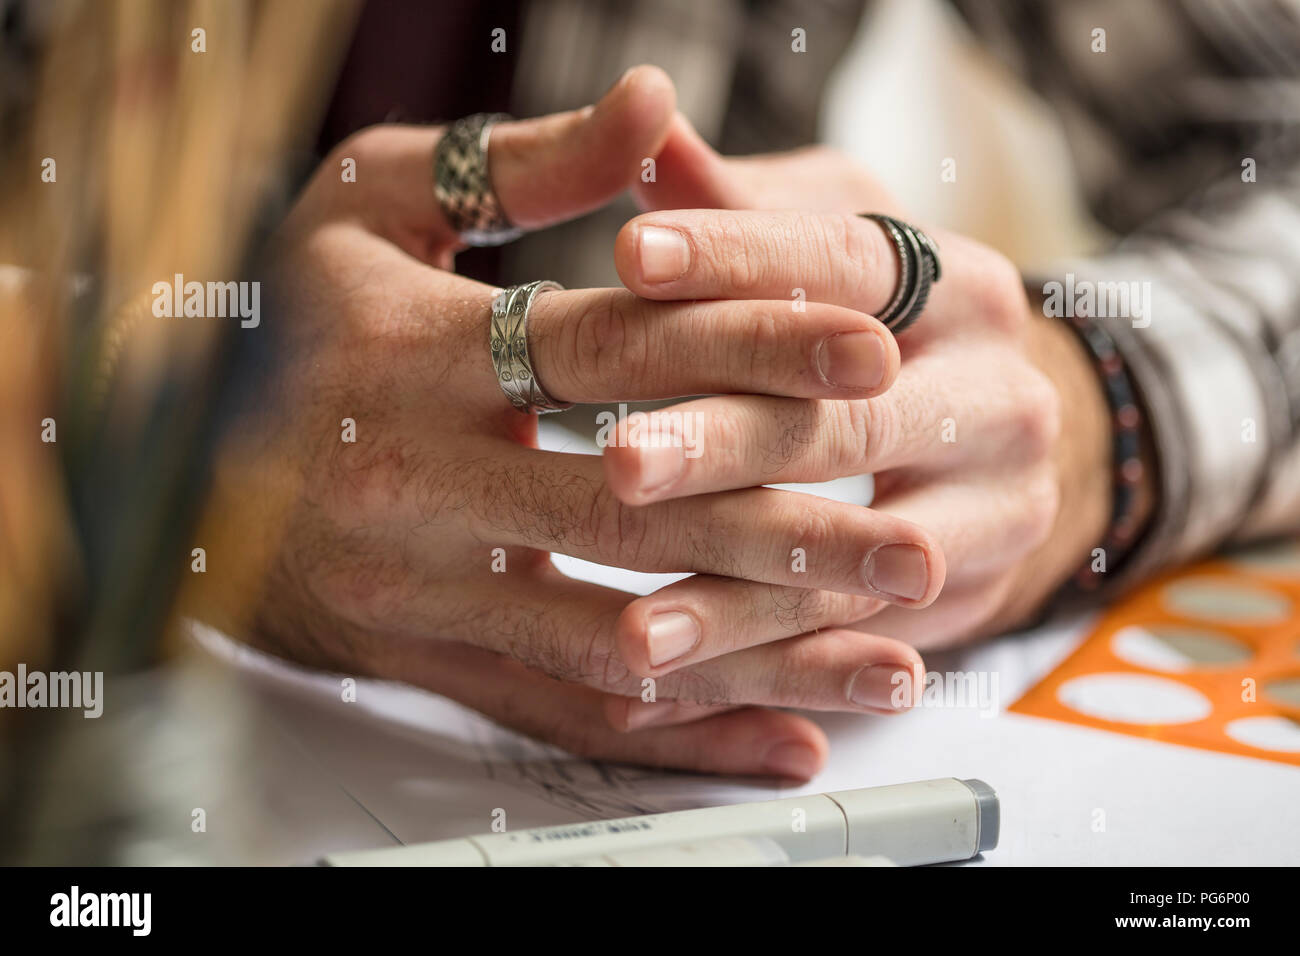 Close-up of artist's hands resting on table - Stock Image